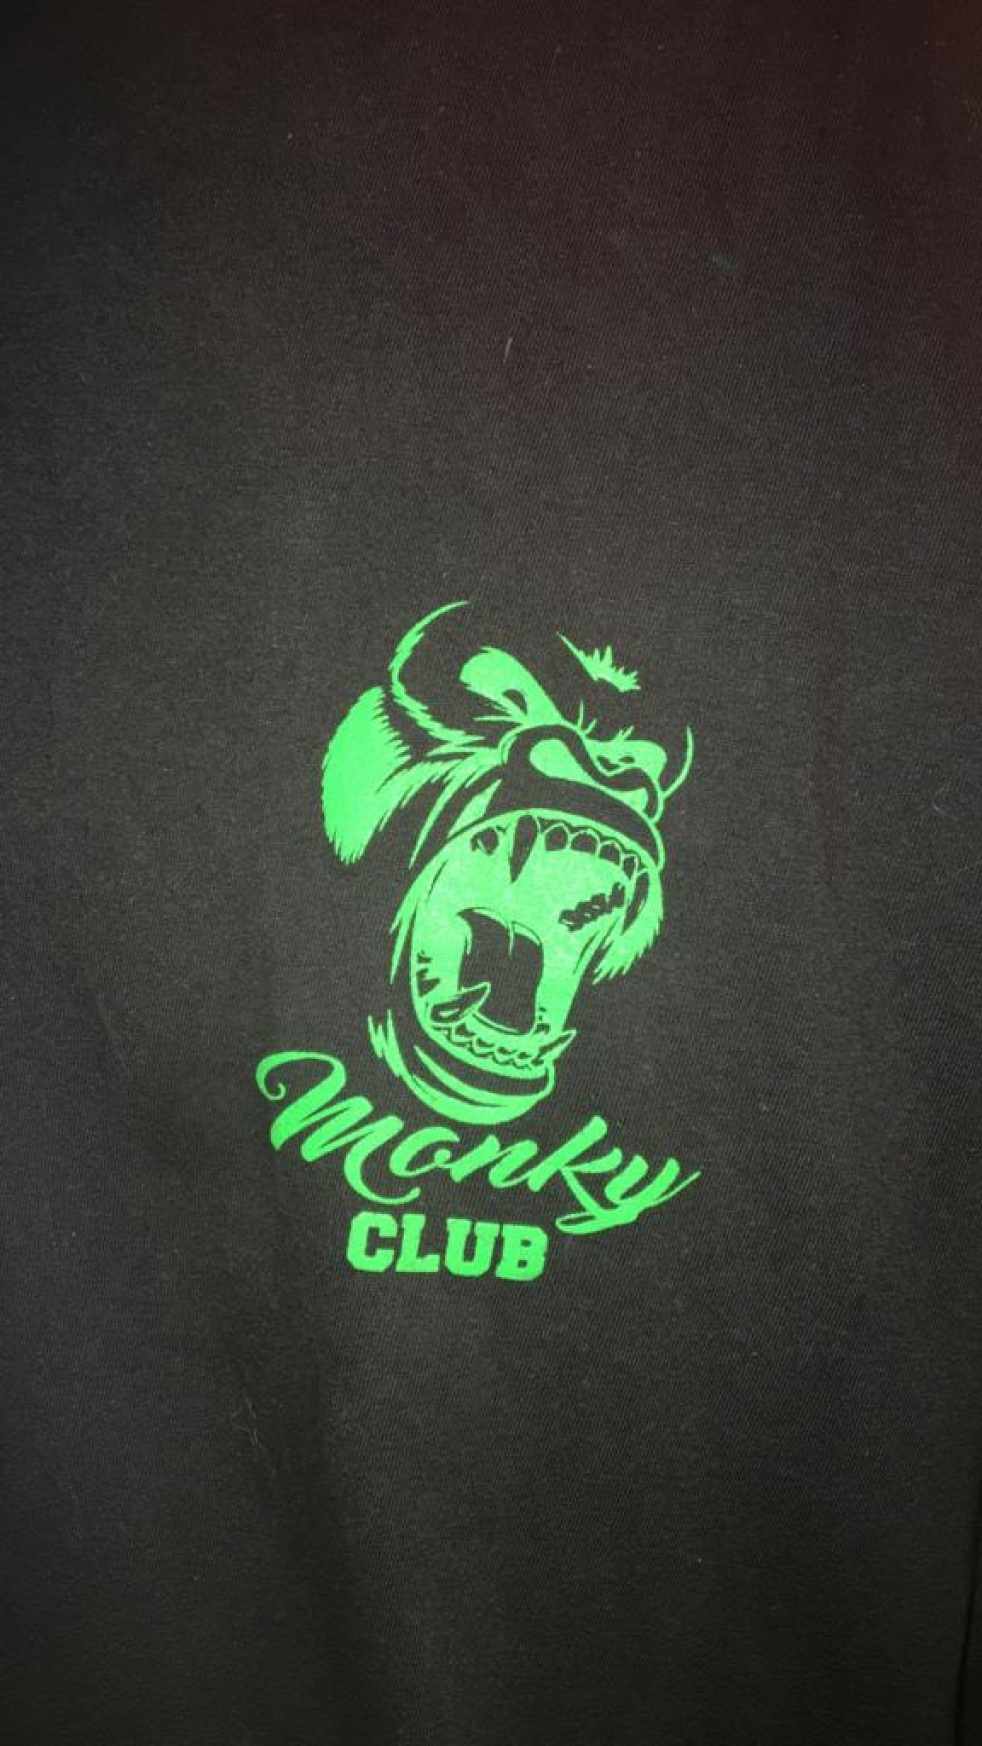 monky club's show - show cover